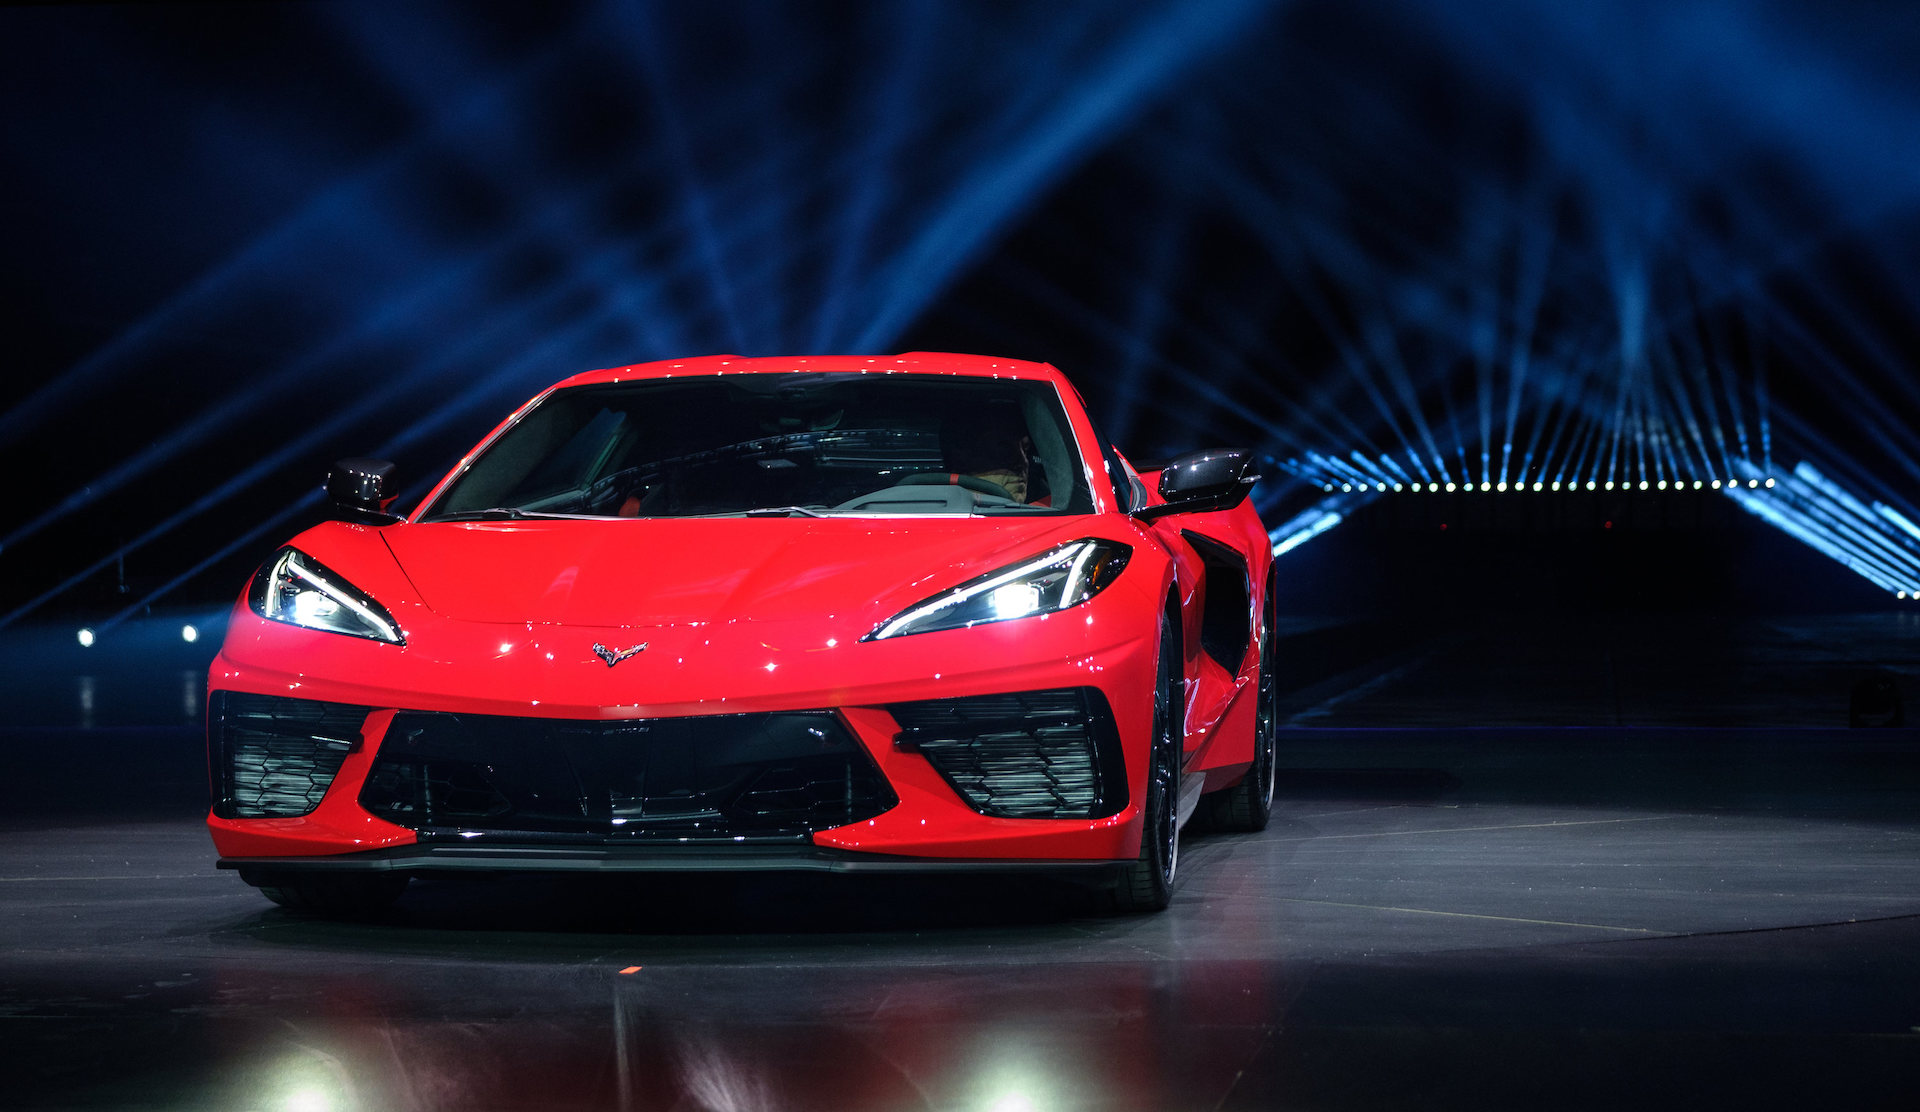 2020 Chevrolet Corvette Stingray Arrives With Mid Engine Design No